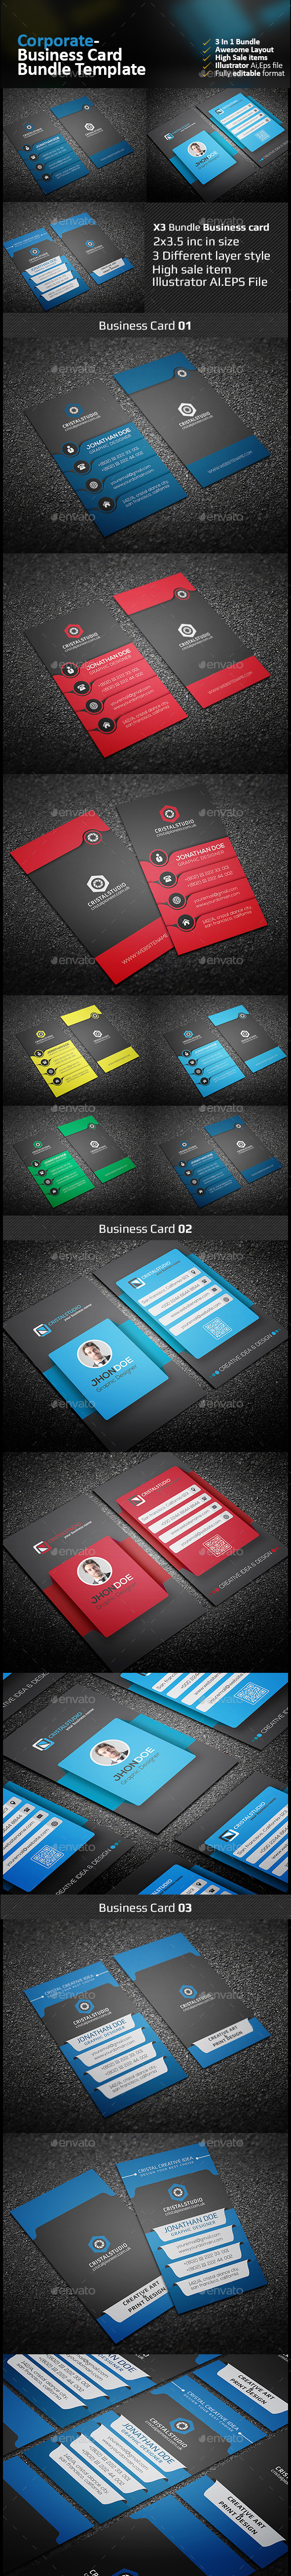 Corporate Business Card Bundle 3 in 1